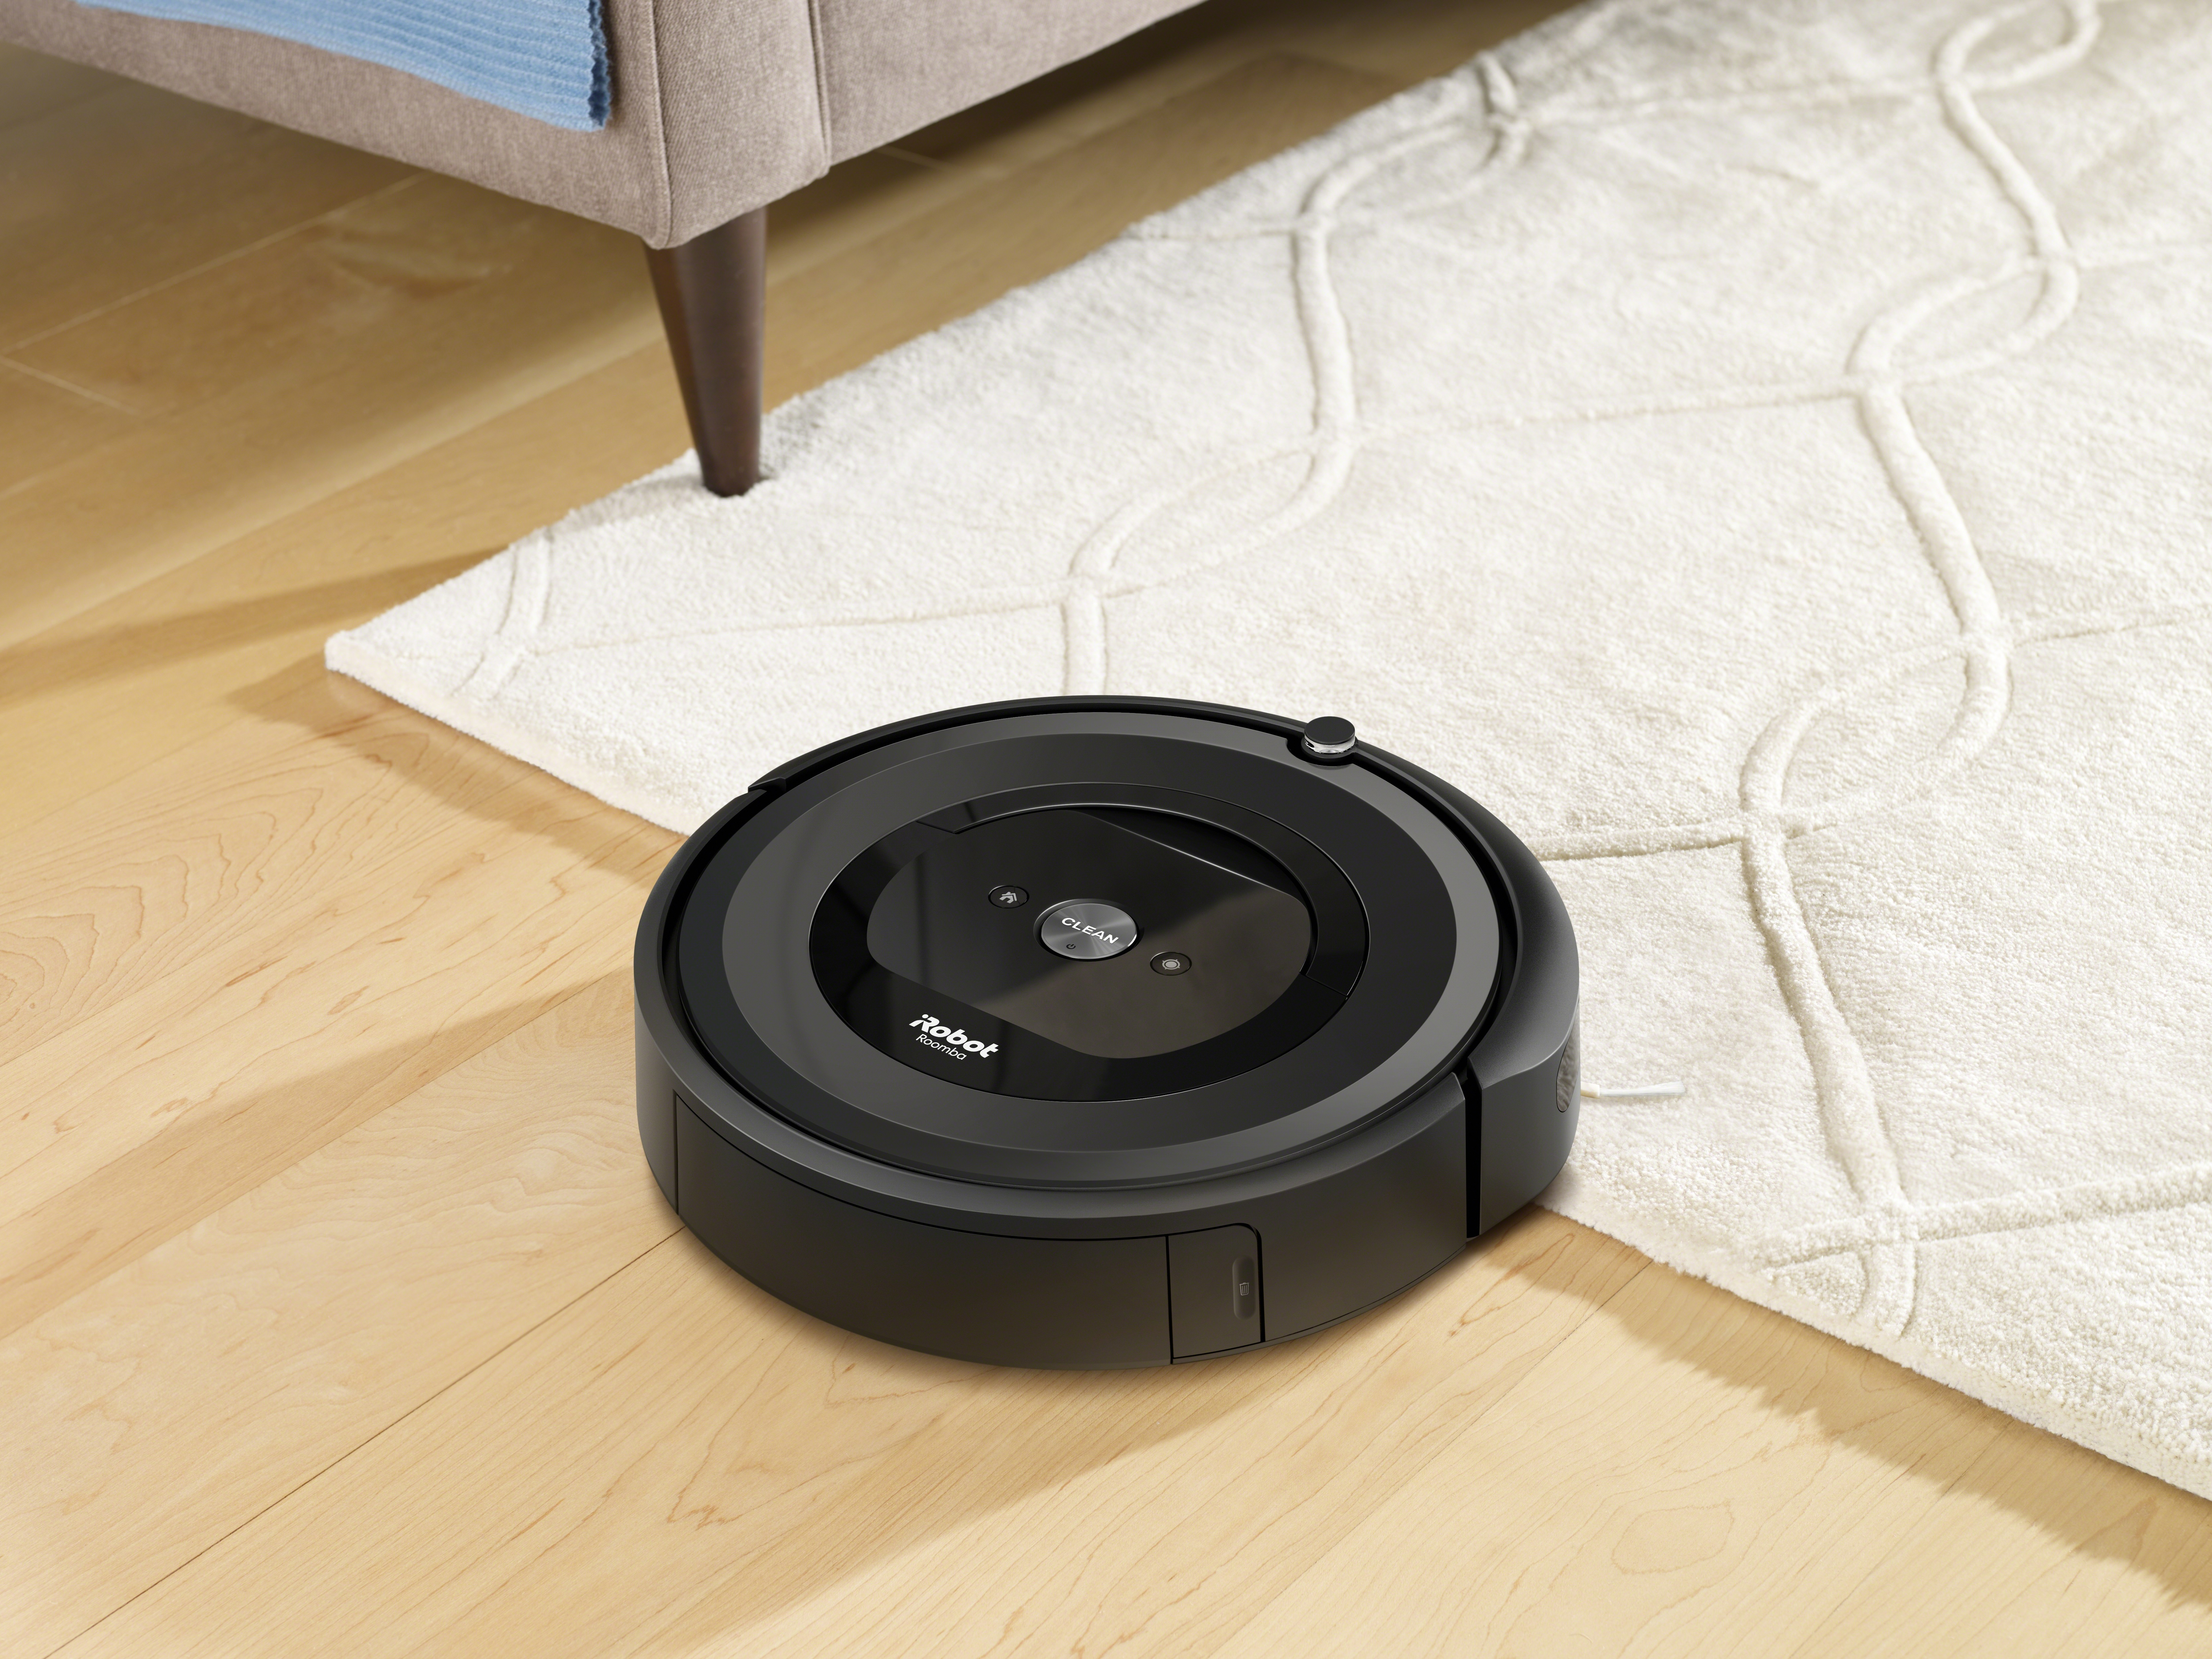 Gadget Review: Roomba Robot Vacuum